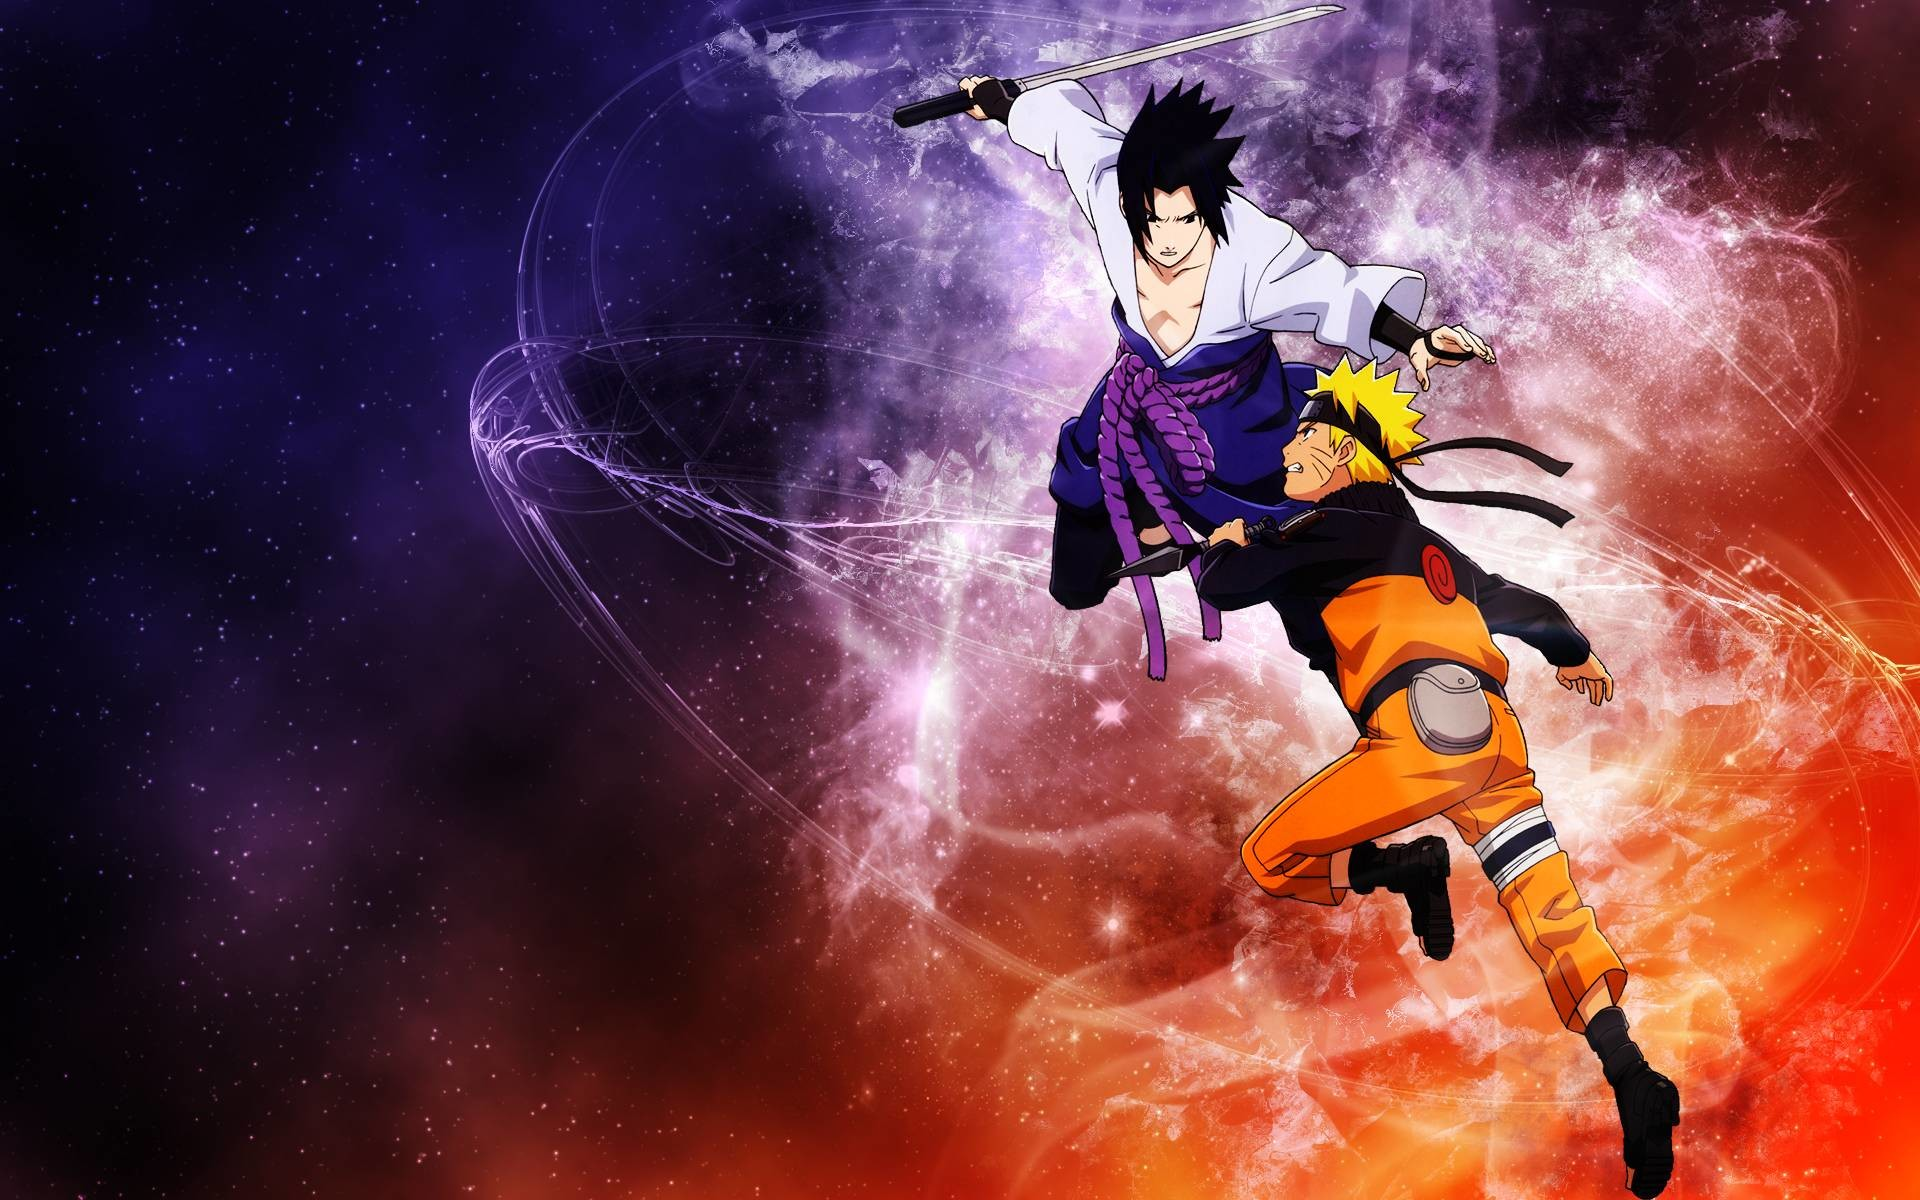 Res: 1920x1200, Awesome Naruto Full HD HDQ Cover Backgrounds - HX234436915